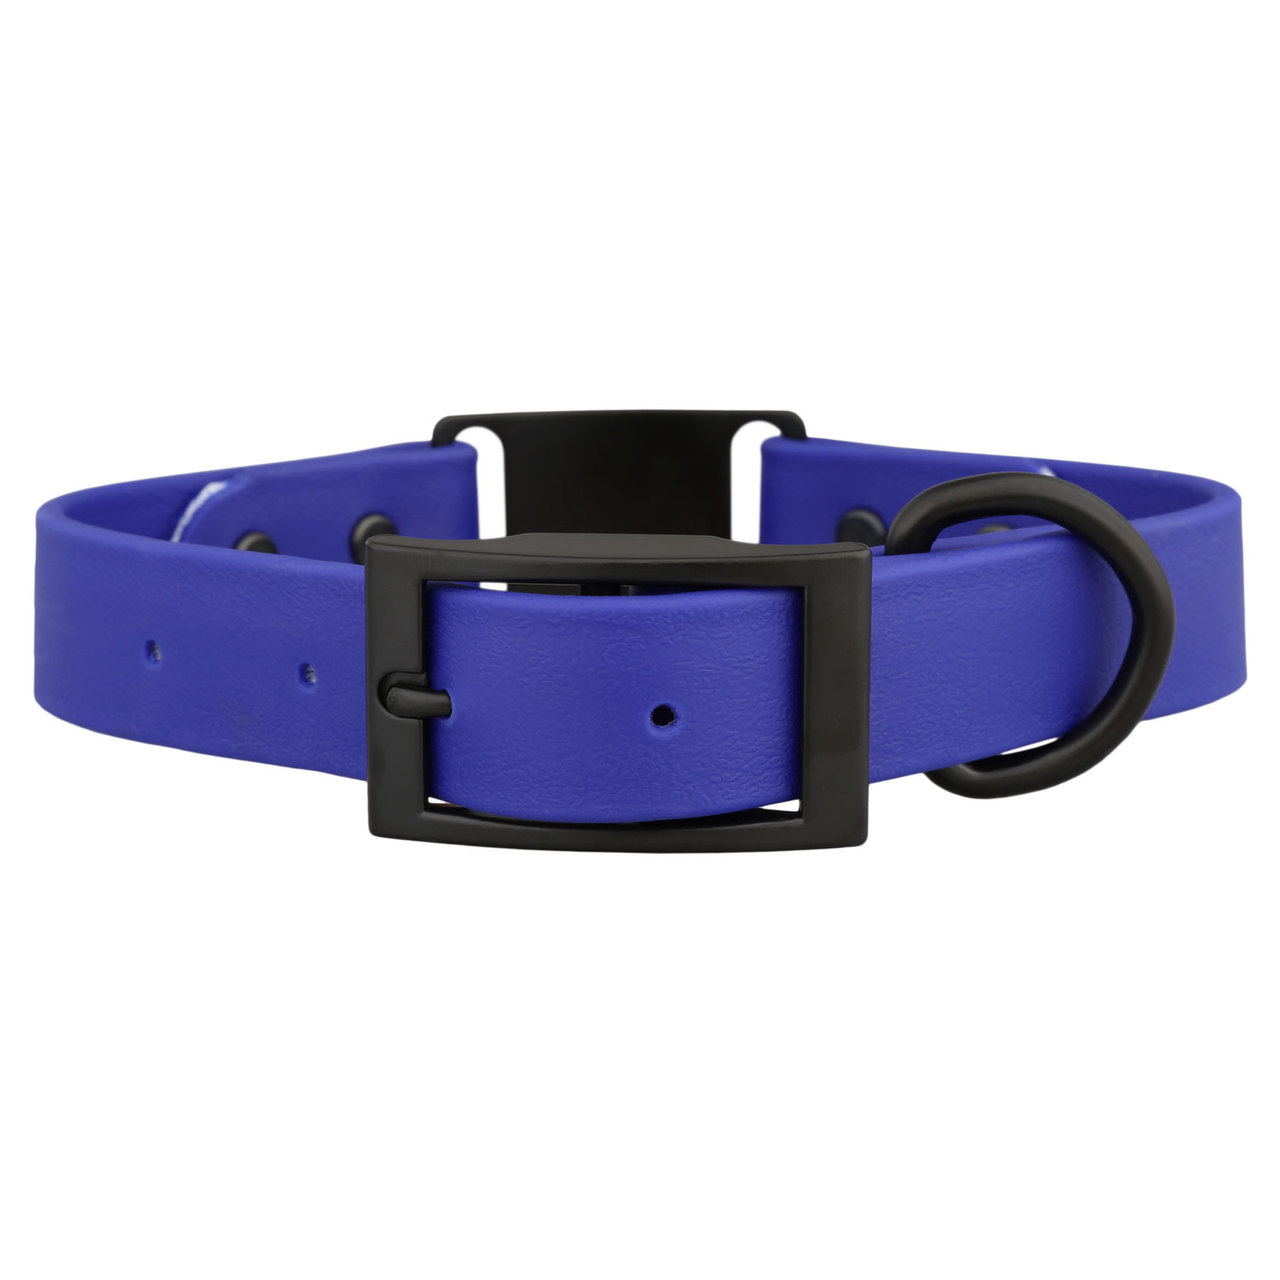 Stealth Waterproof ScruffTag Dog Collar Blue Buckle View